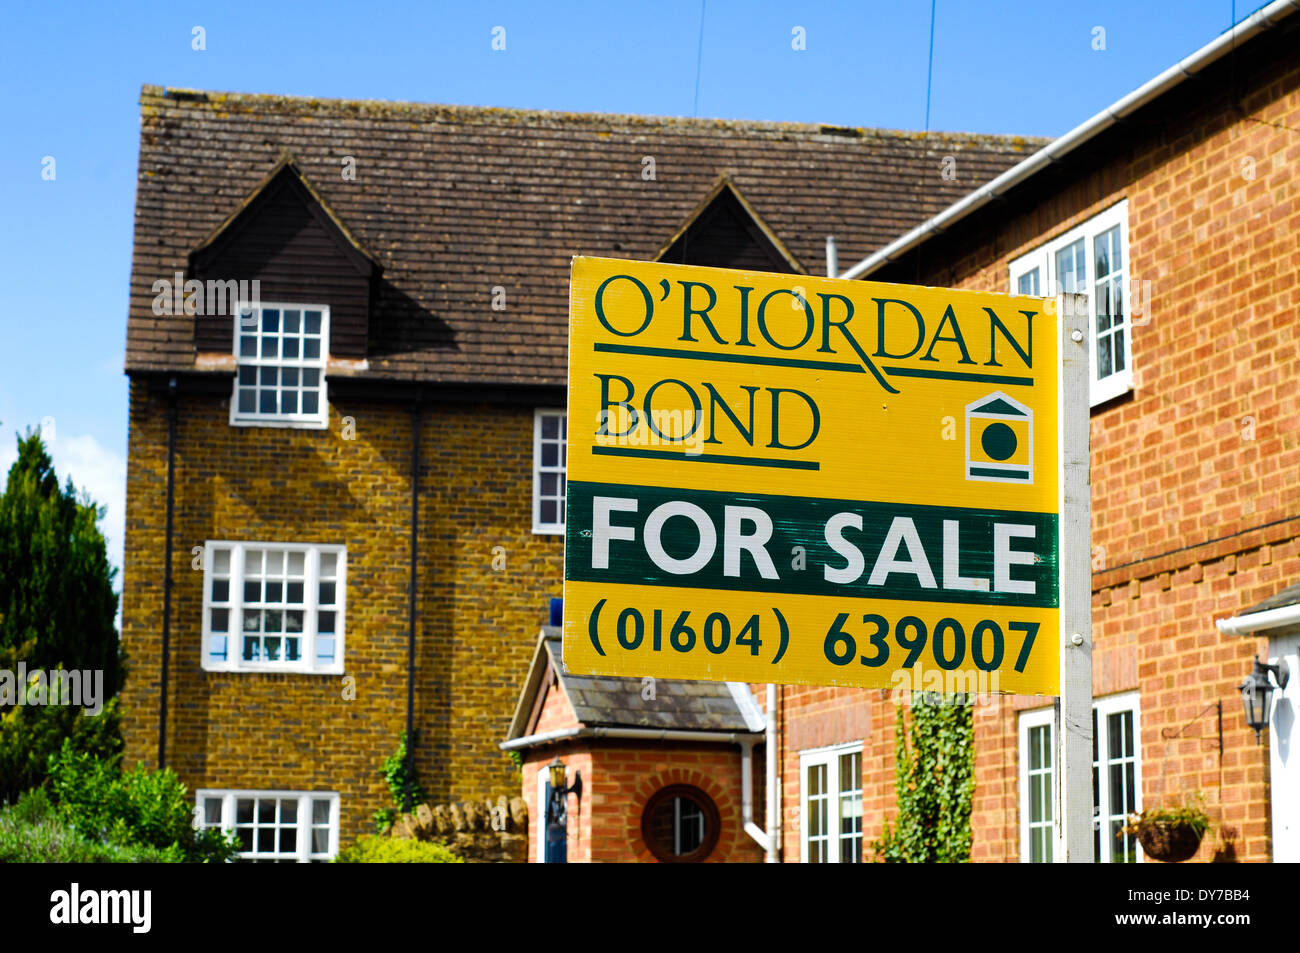 House for sale sign - Stock Image